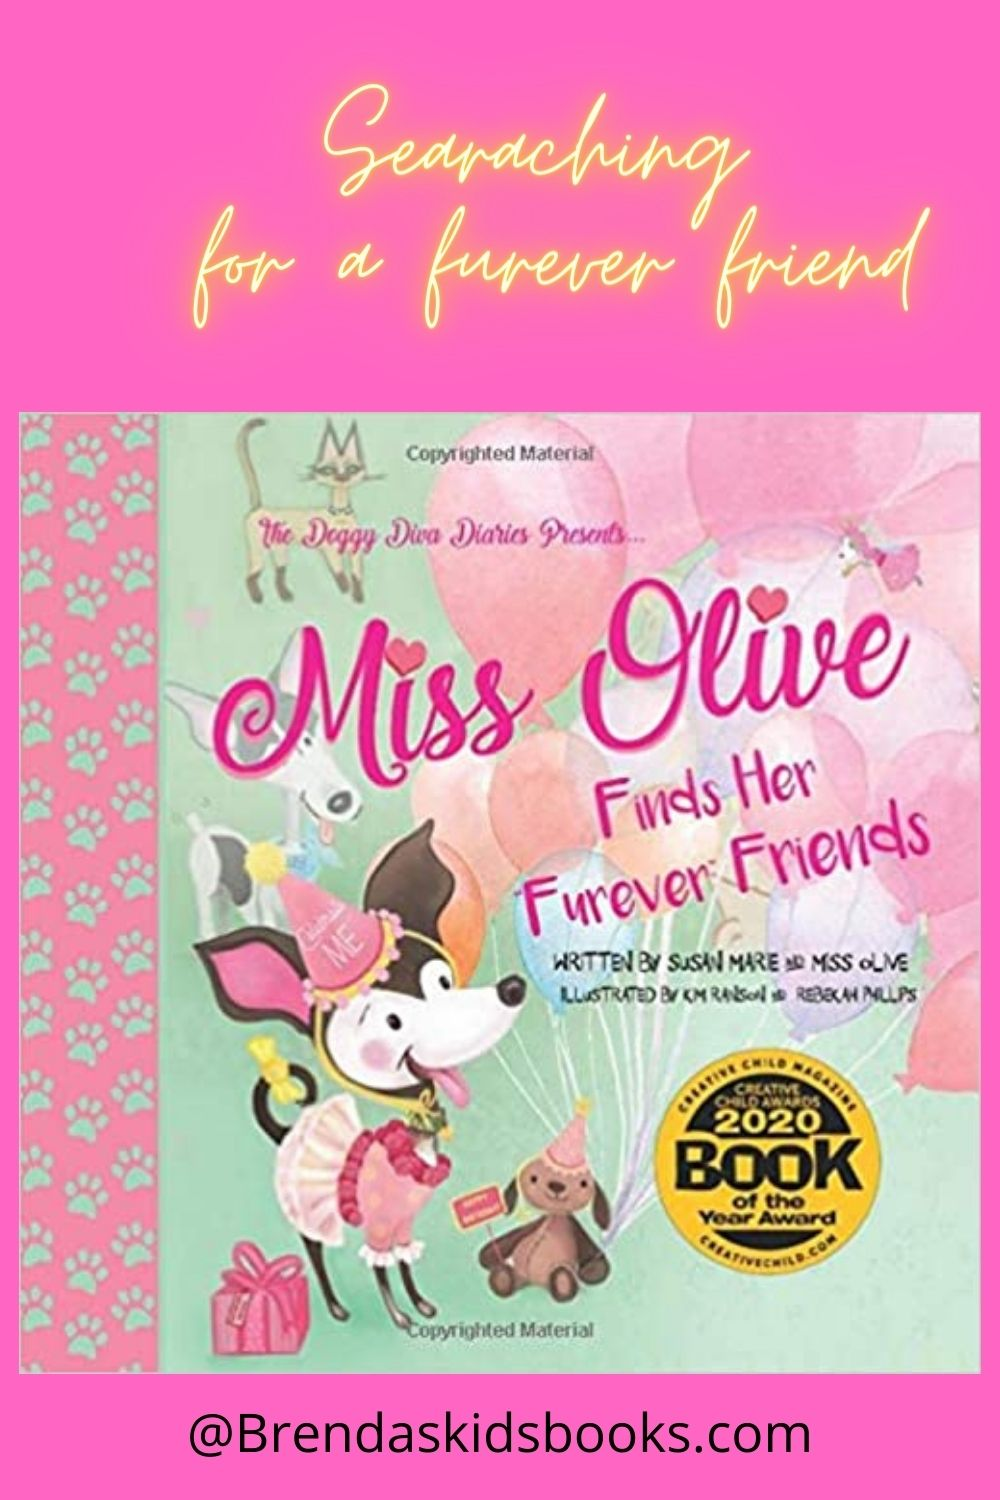 Searching for a forever home. A picture of book Miss Olive finds her furever friends. Diva Diarie. The dog is a cute little 3 legged dog with a pink and green background. Miss Olive is wearing a party hat.